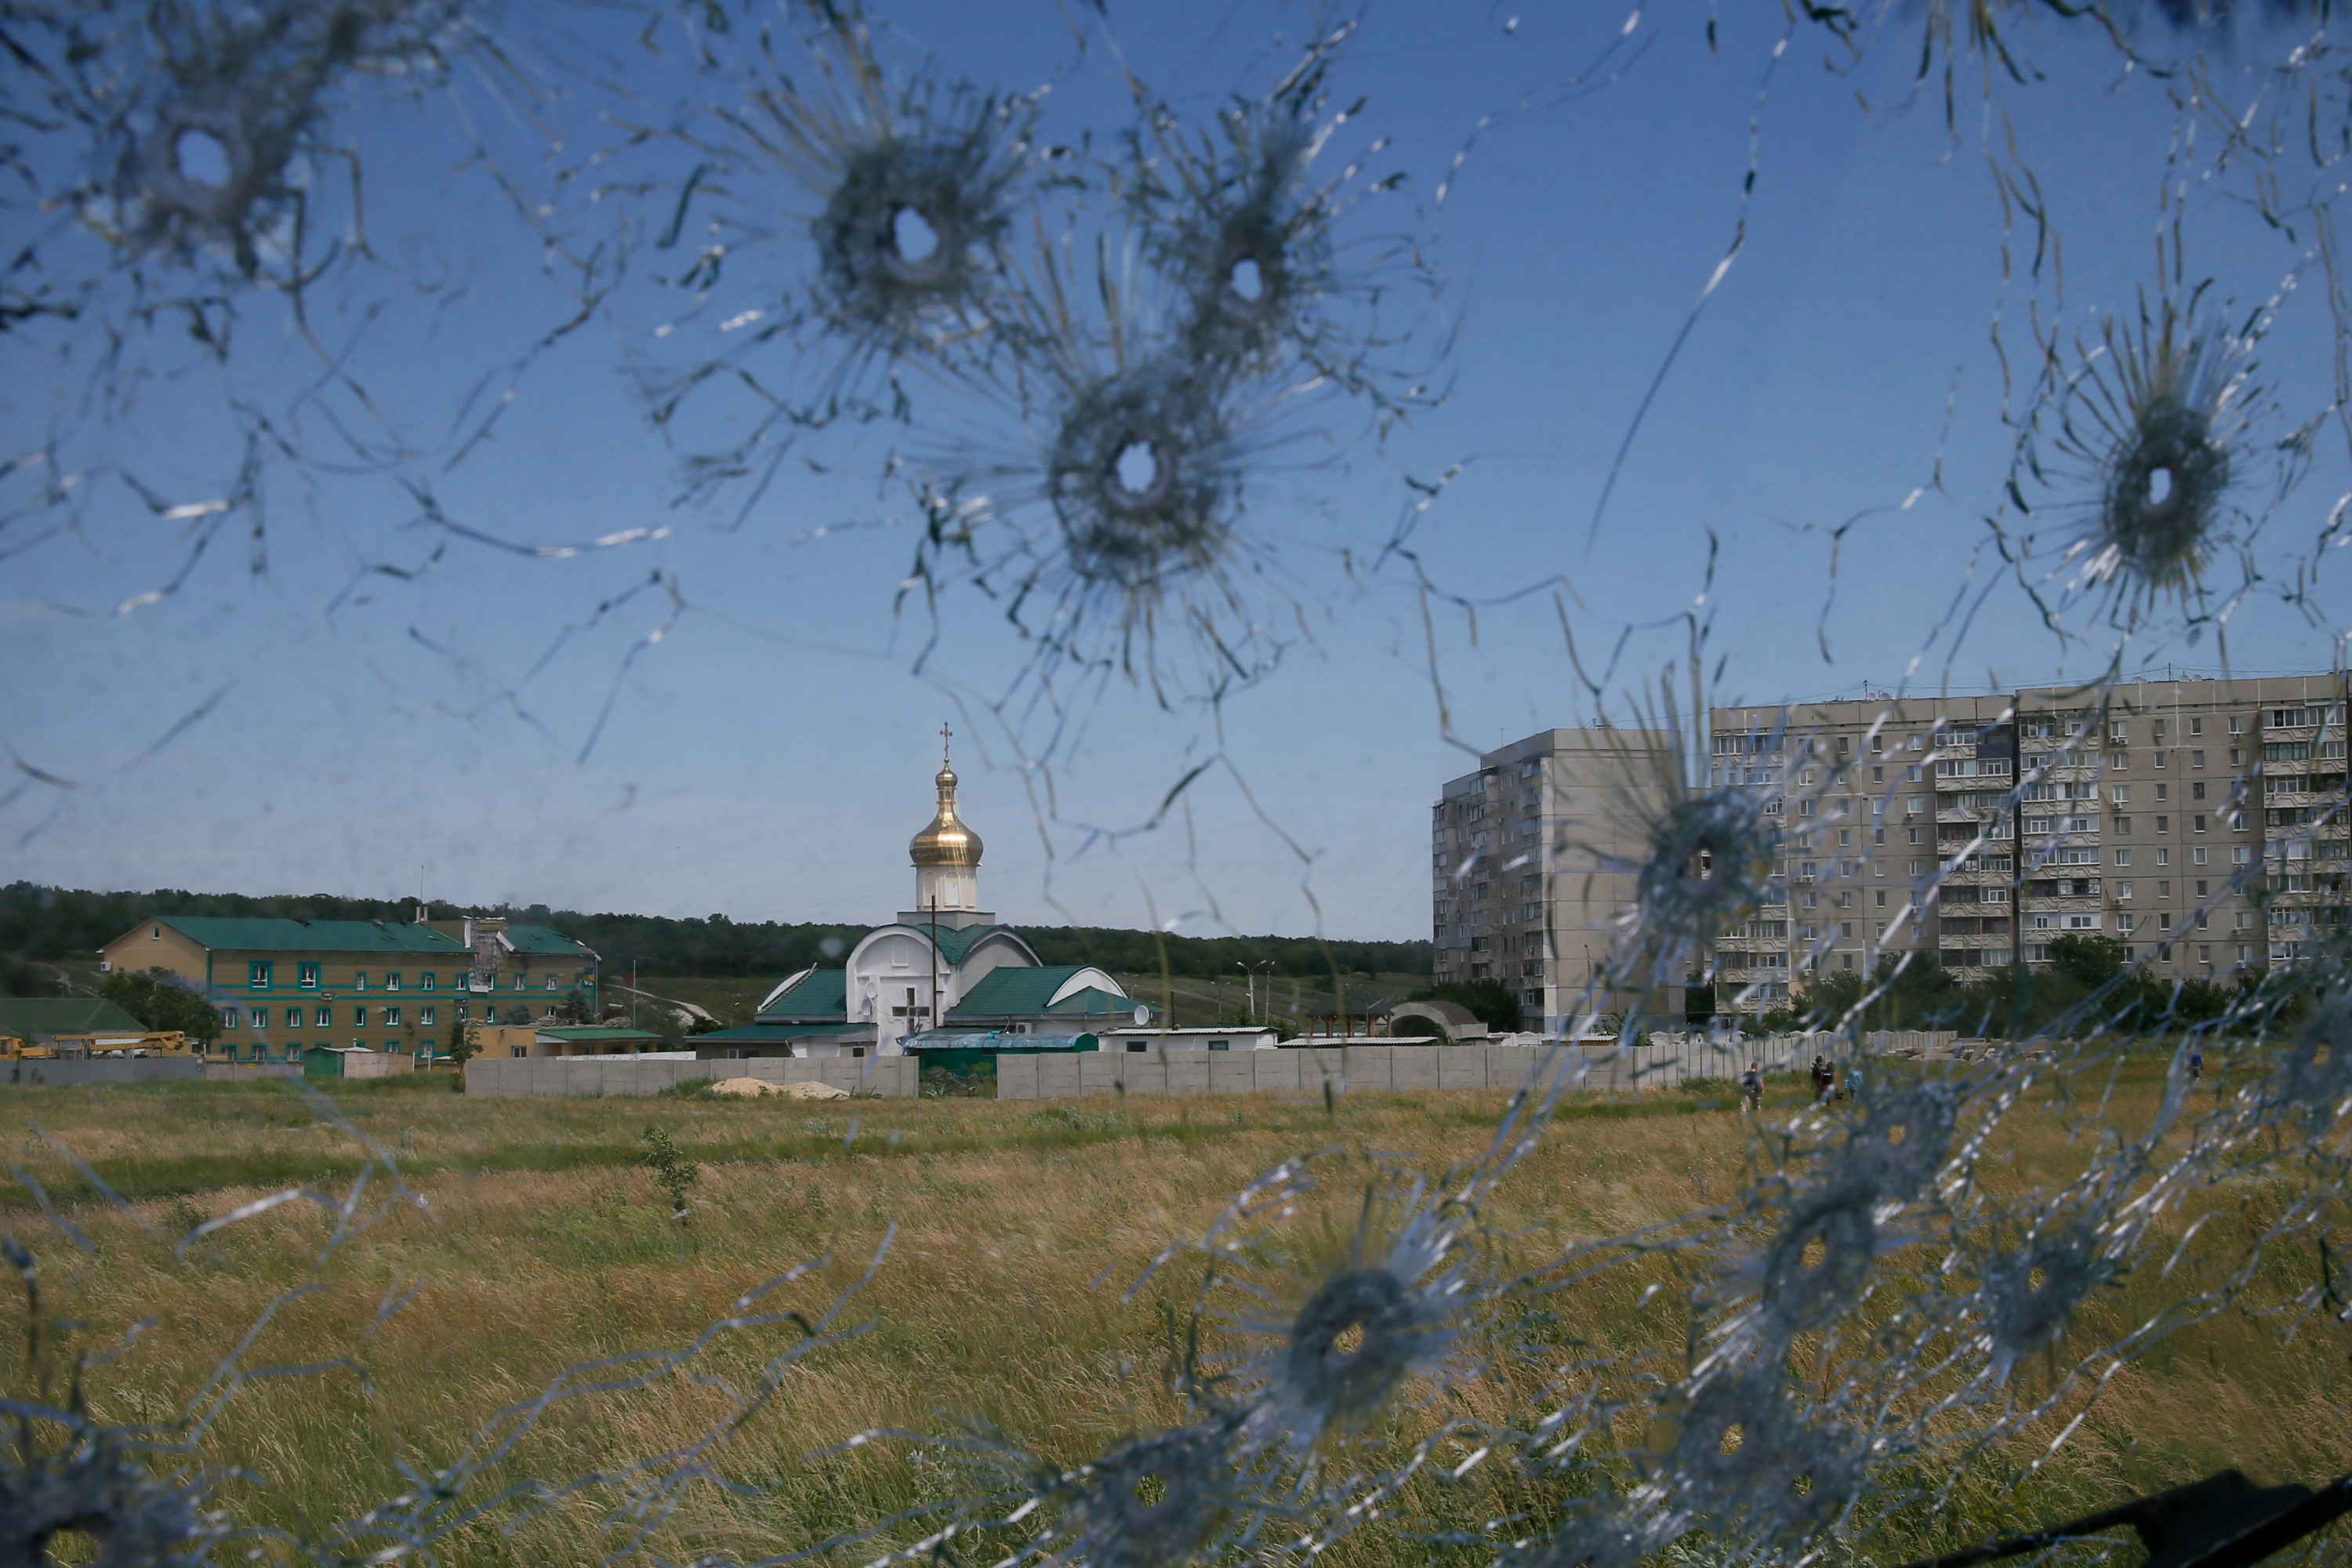 A Ukrainian border post is seen through bullet holes in a truck's windscreen on the outskirts of the eastern Ukrainian city of Luhansk, 3 June. Photo: Reuters